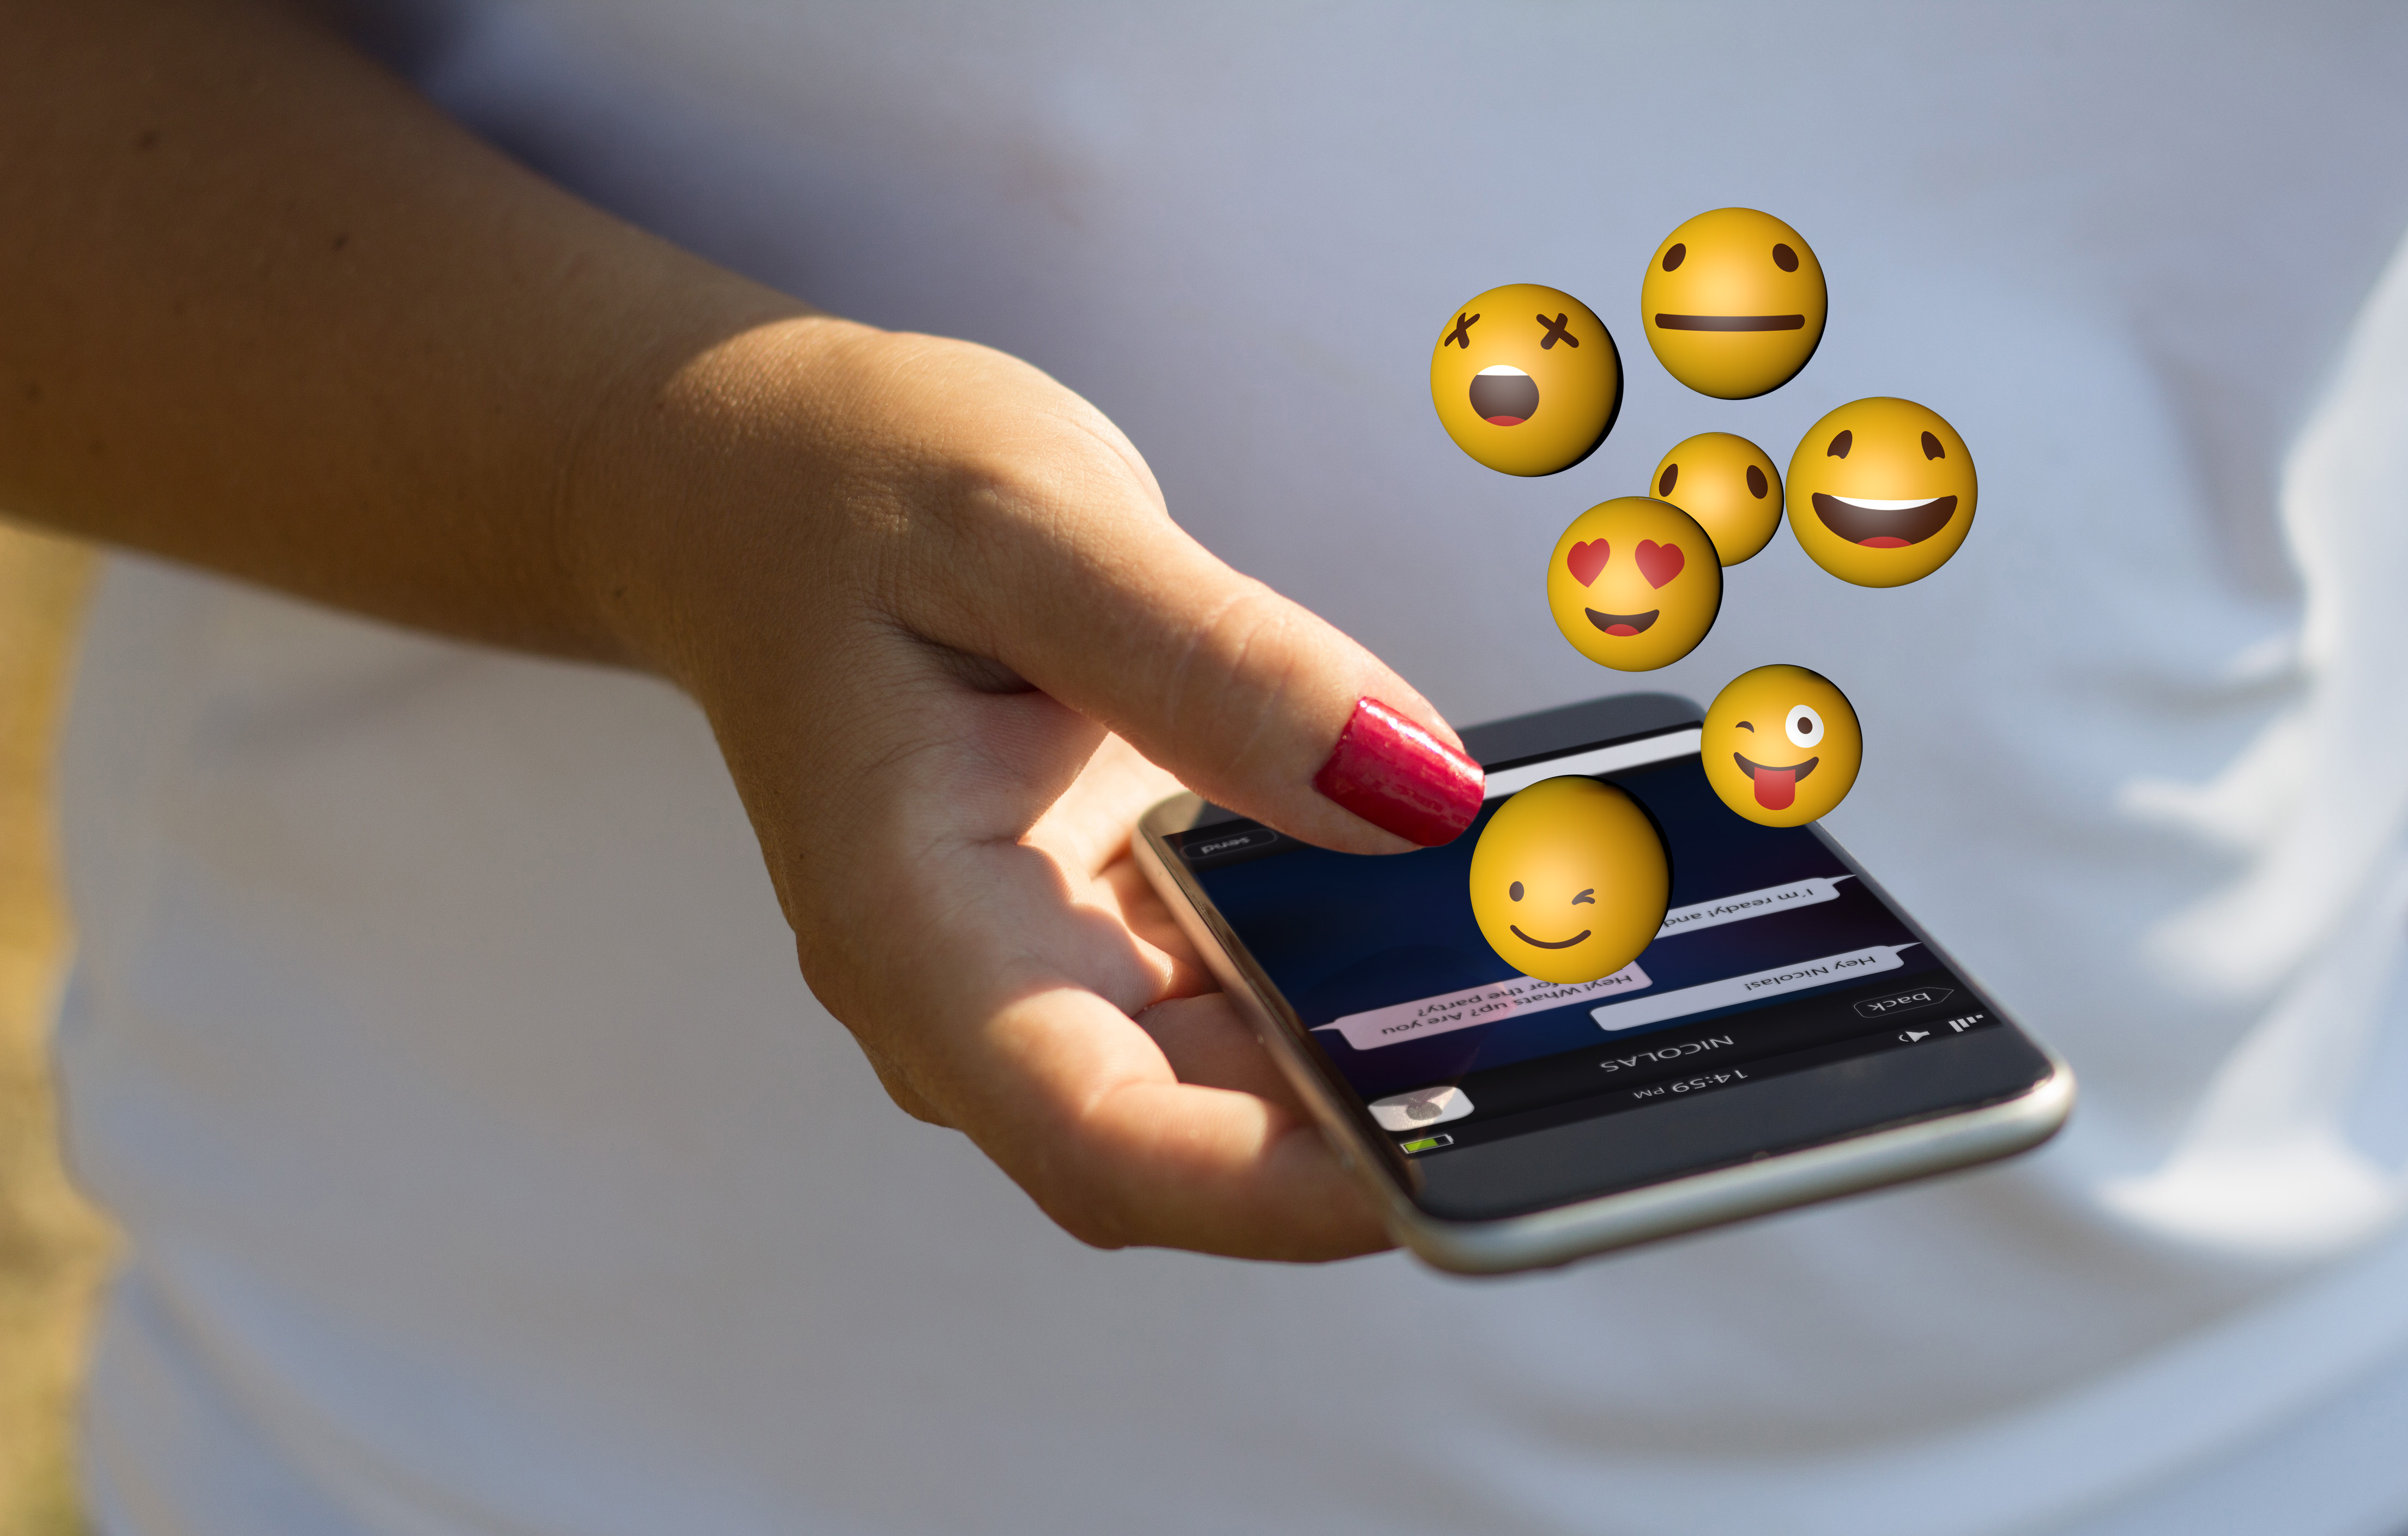 Emotions: A Little More Than Emojis